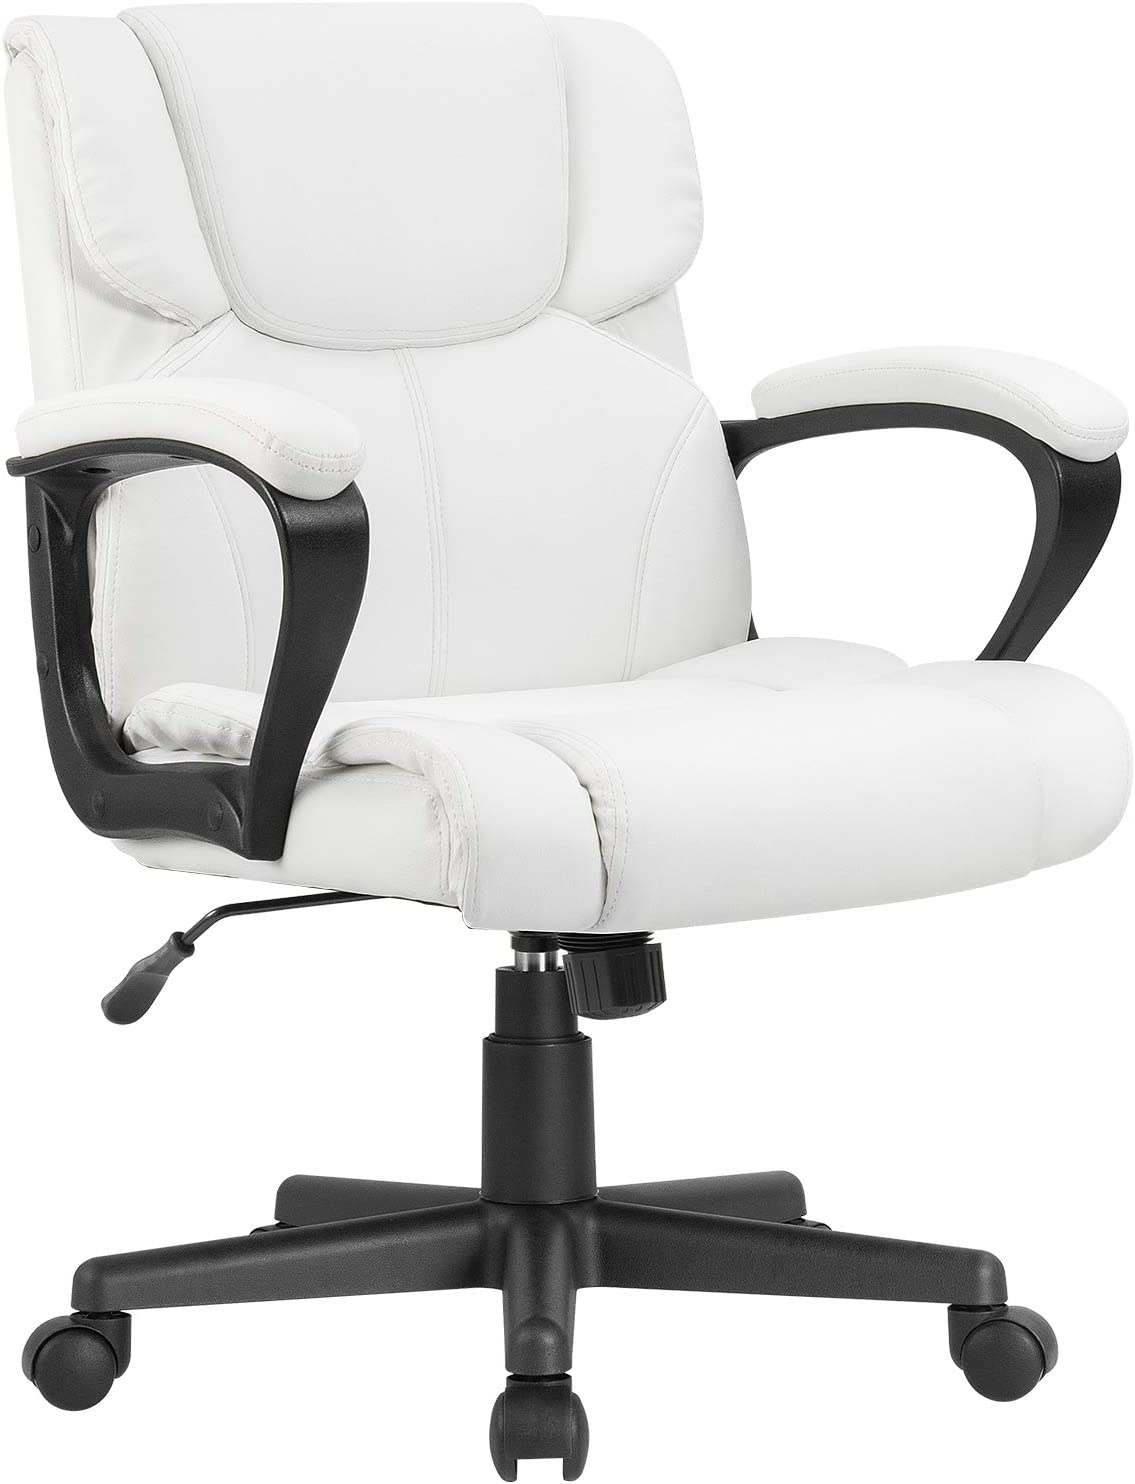 Furmax Mid Back Executive Office Chair Leather-Padded Desk Computer Chair with Armrests,Ergonomic Swivel Task Chair with Lumbar Support (White)